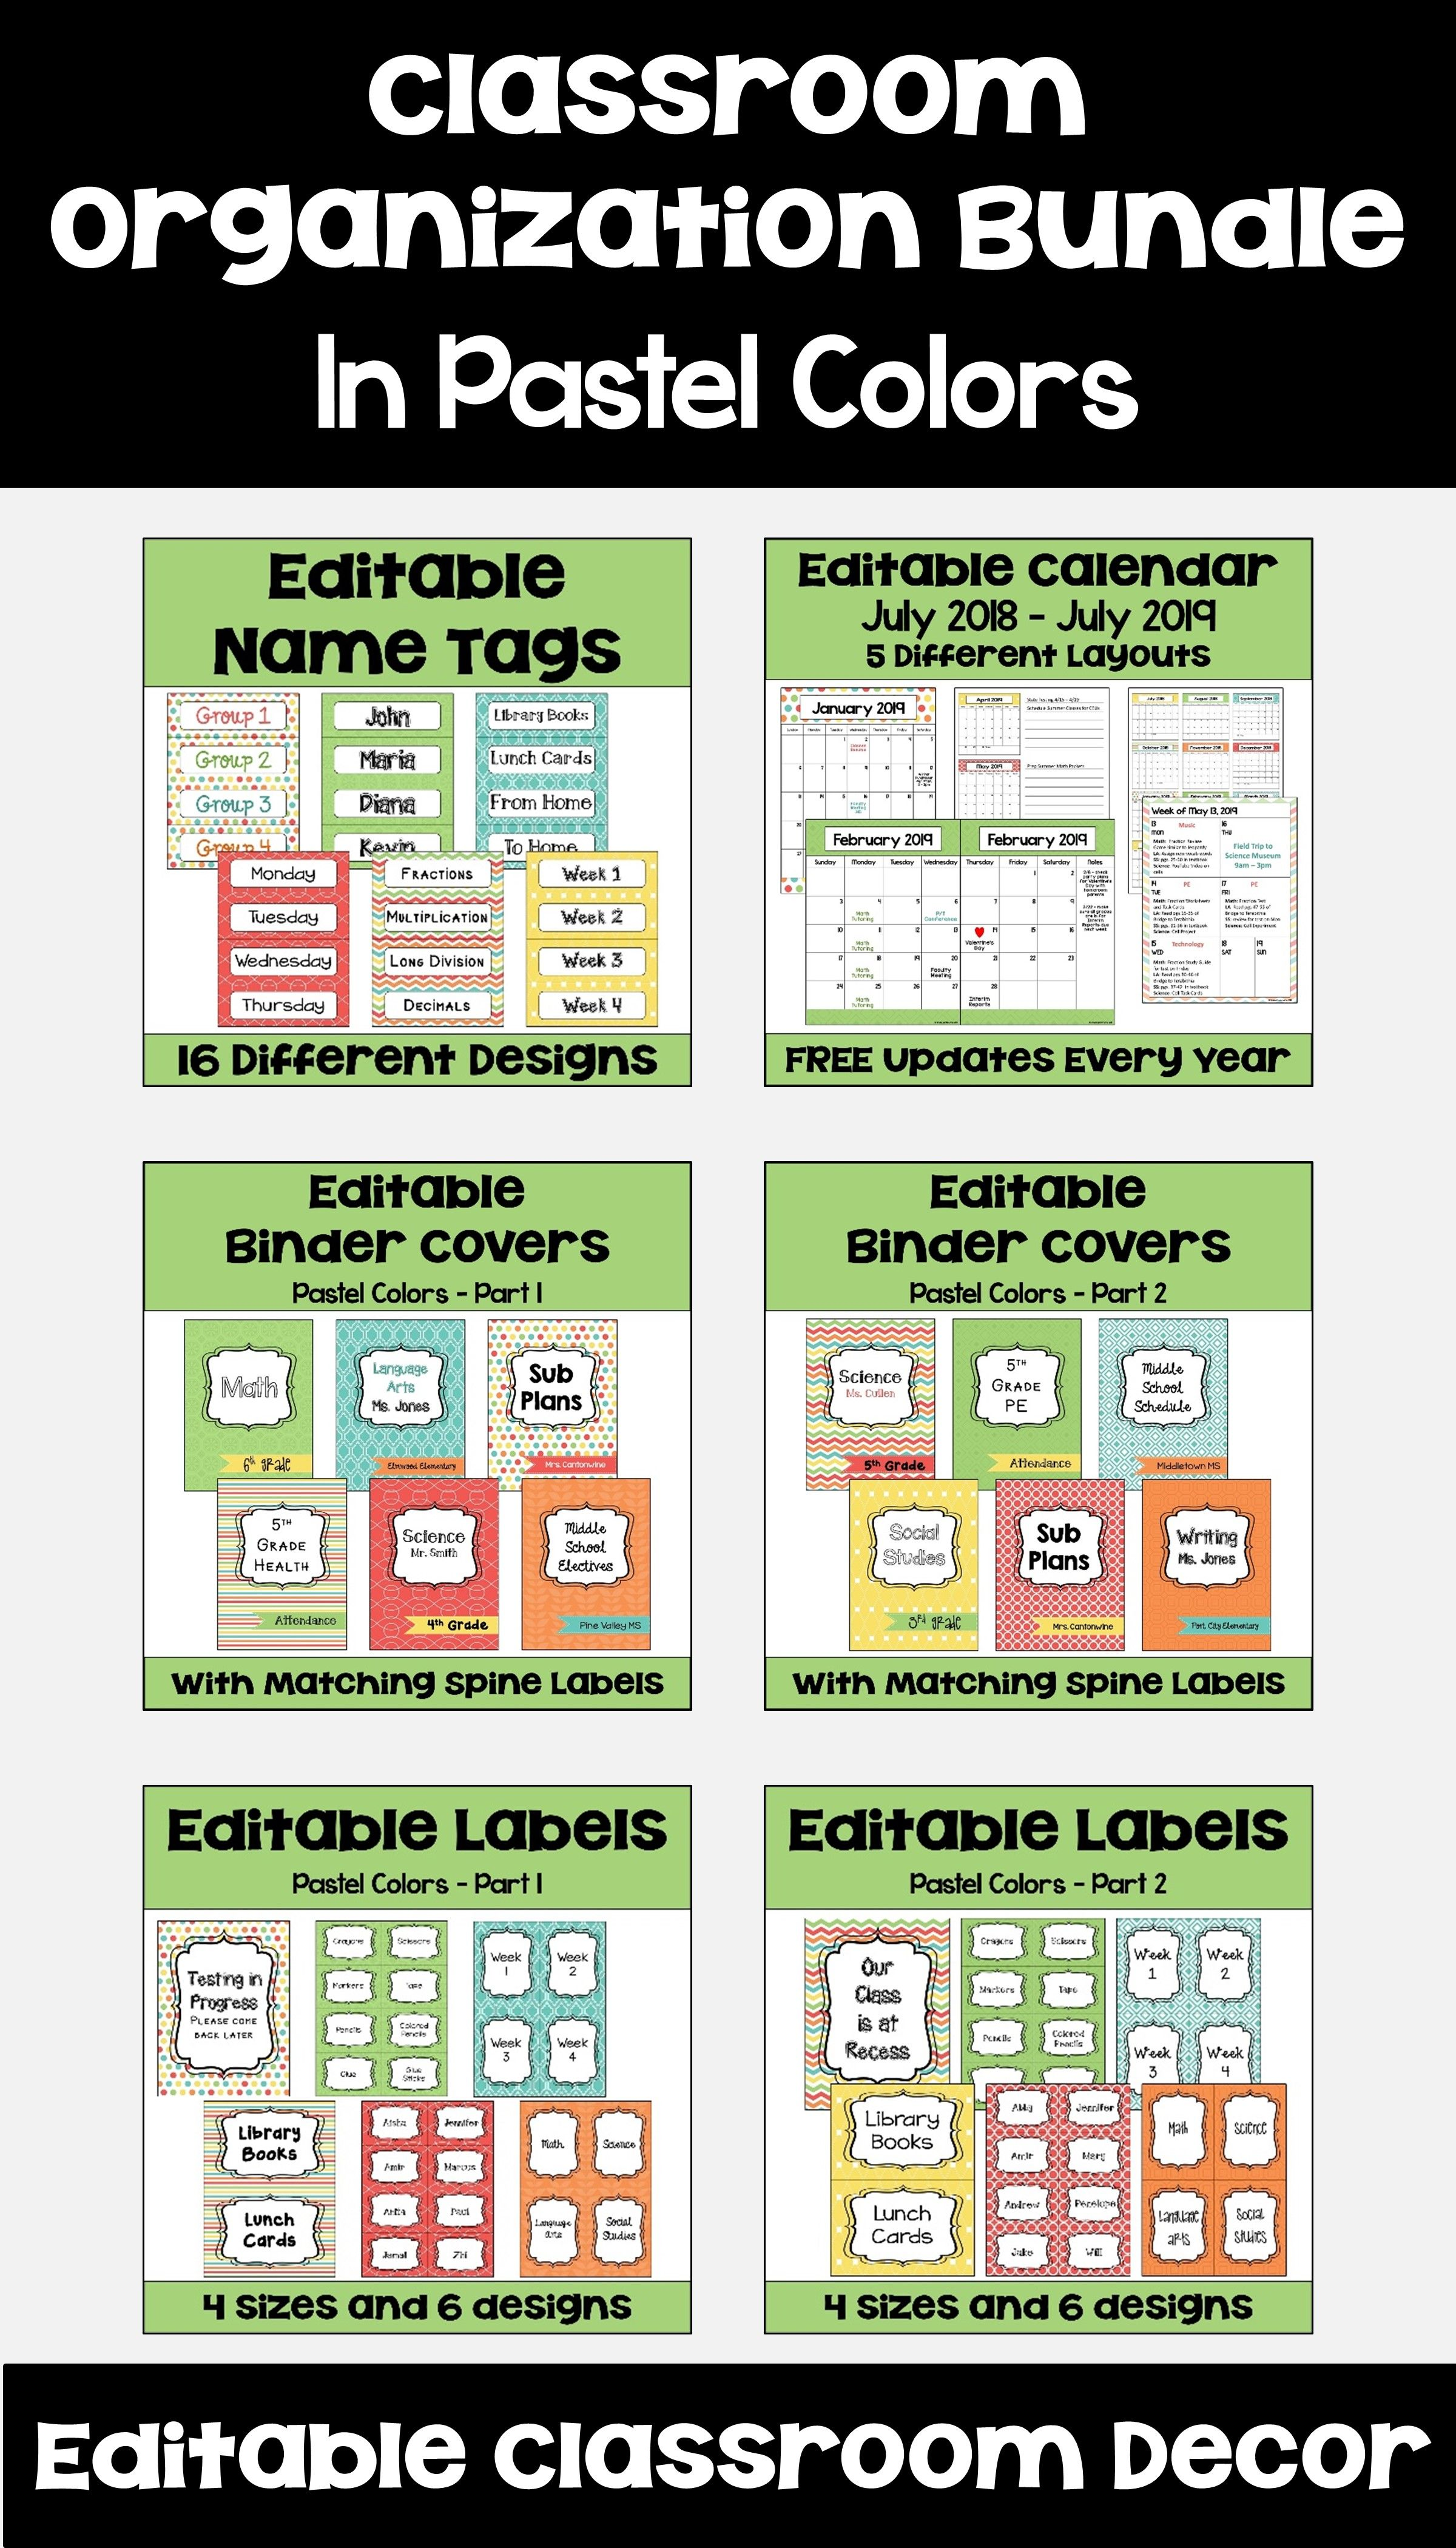 Classroom Organization Bundle In Pastel Colors